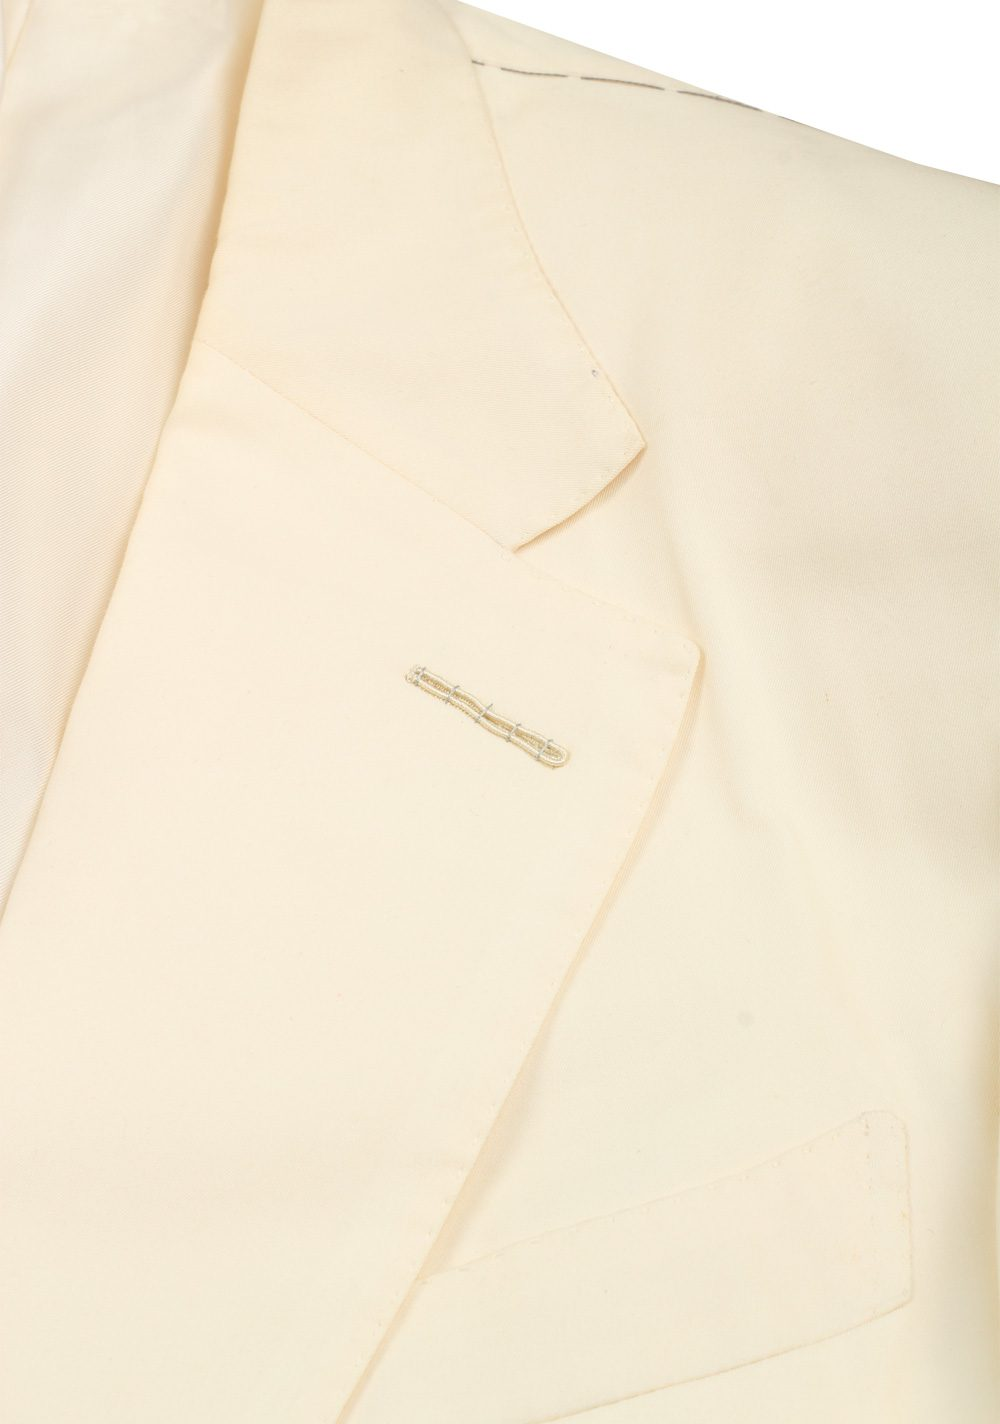 TOM FORD Windsor Off White Suit Size 50 / 40R U.S. Cotton Silk Fit A | Costume Limité